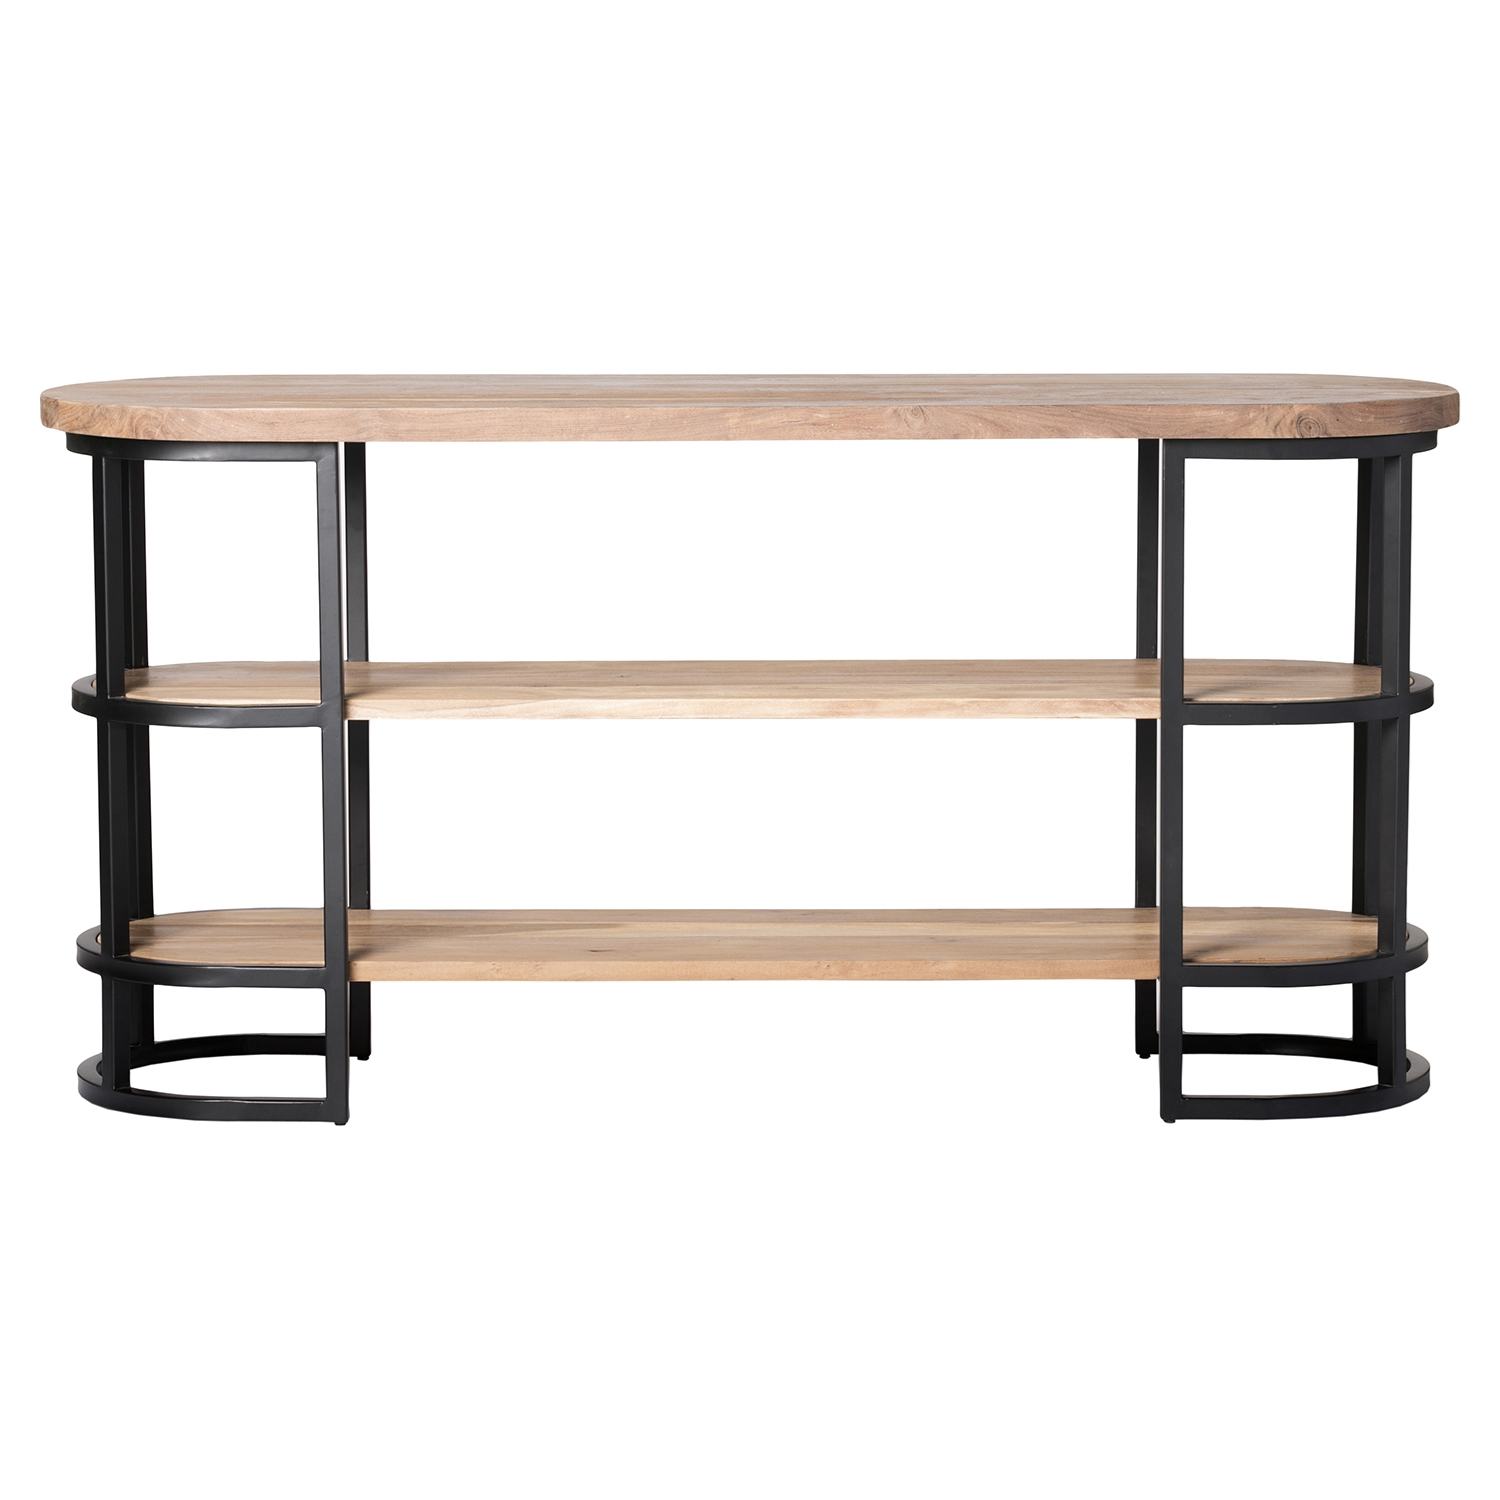 Race Console Table - Light Brown - MOES-VE-1005-21